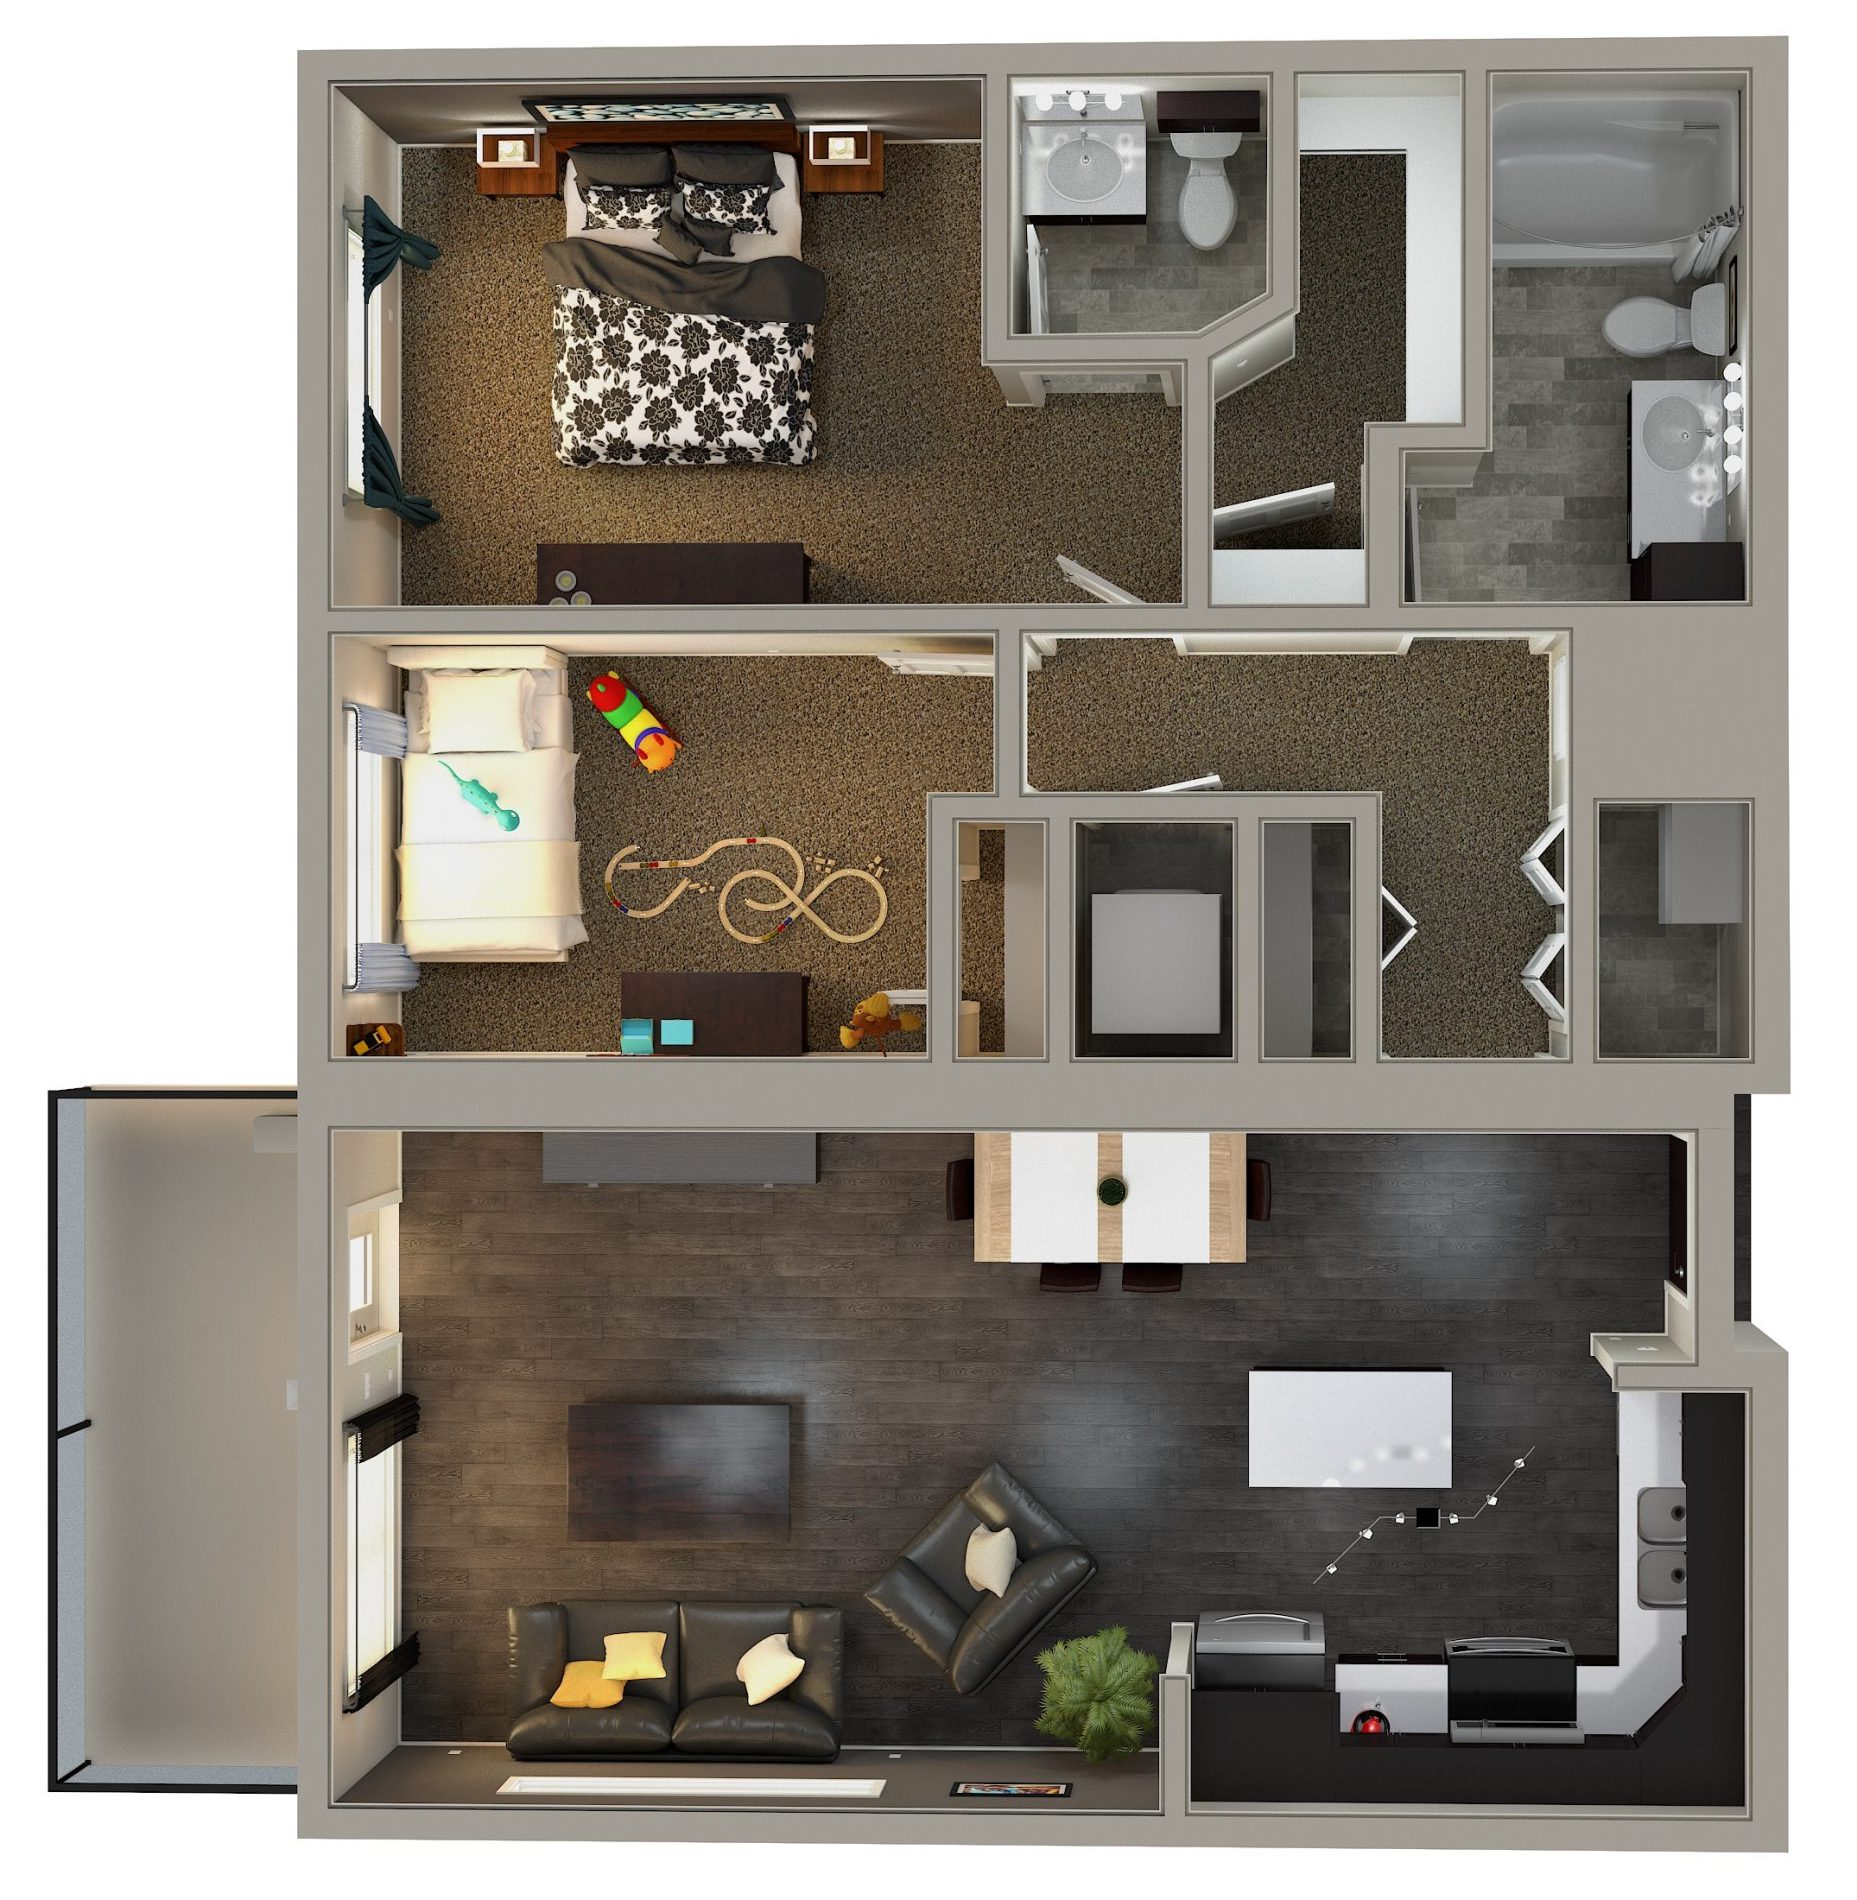 Kensington Flats 2 Bedroom Condo Floor Plan